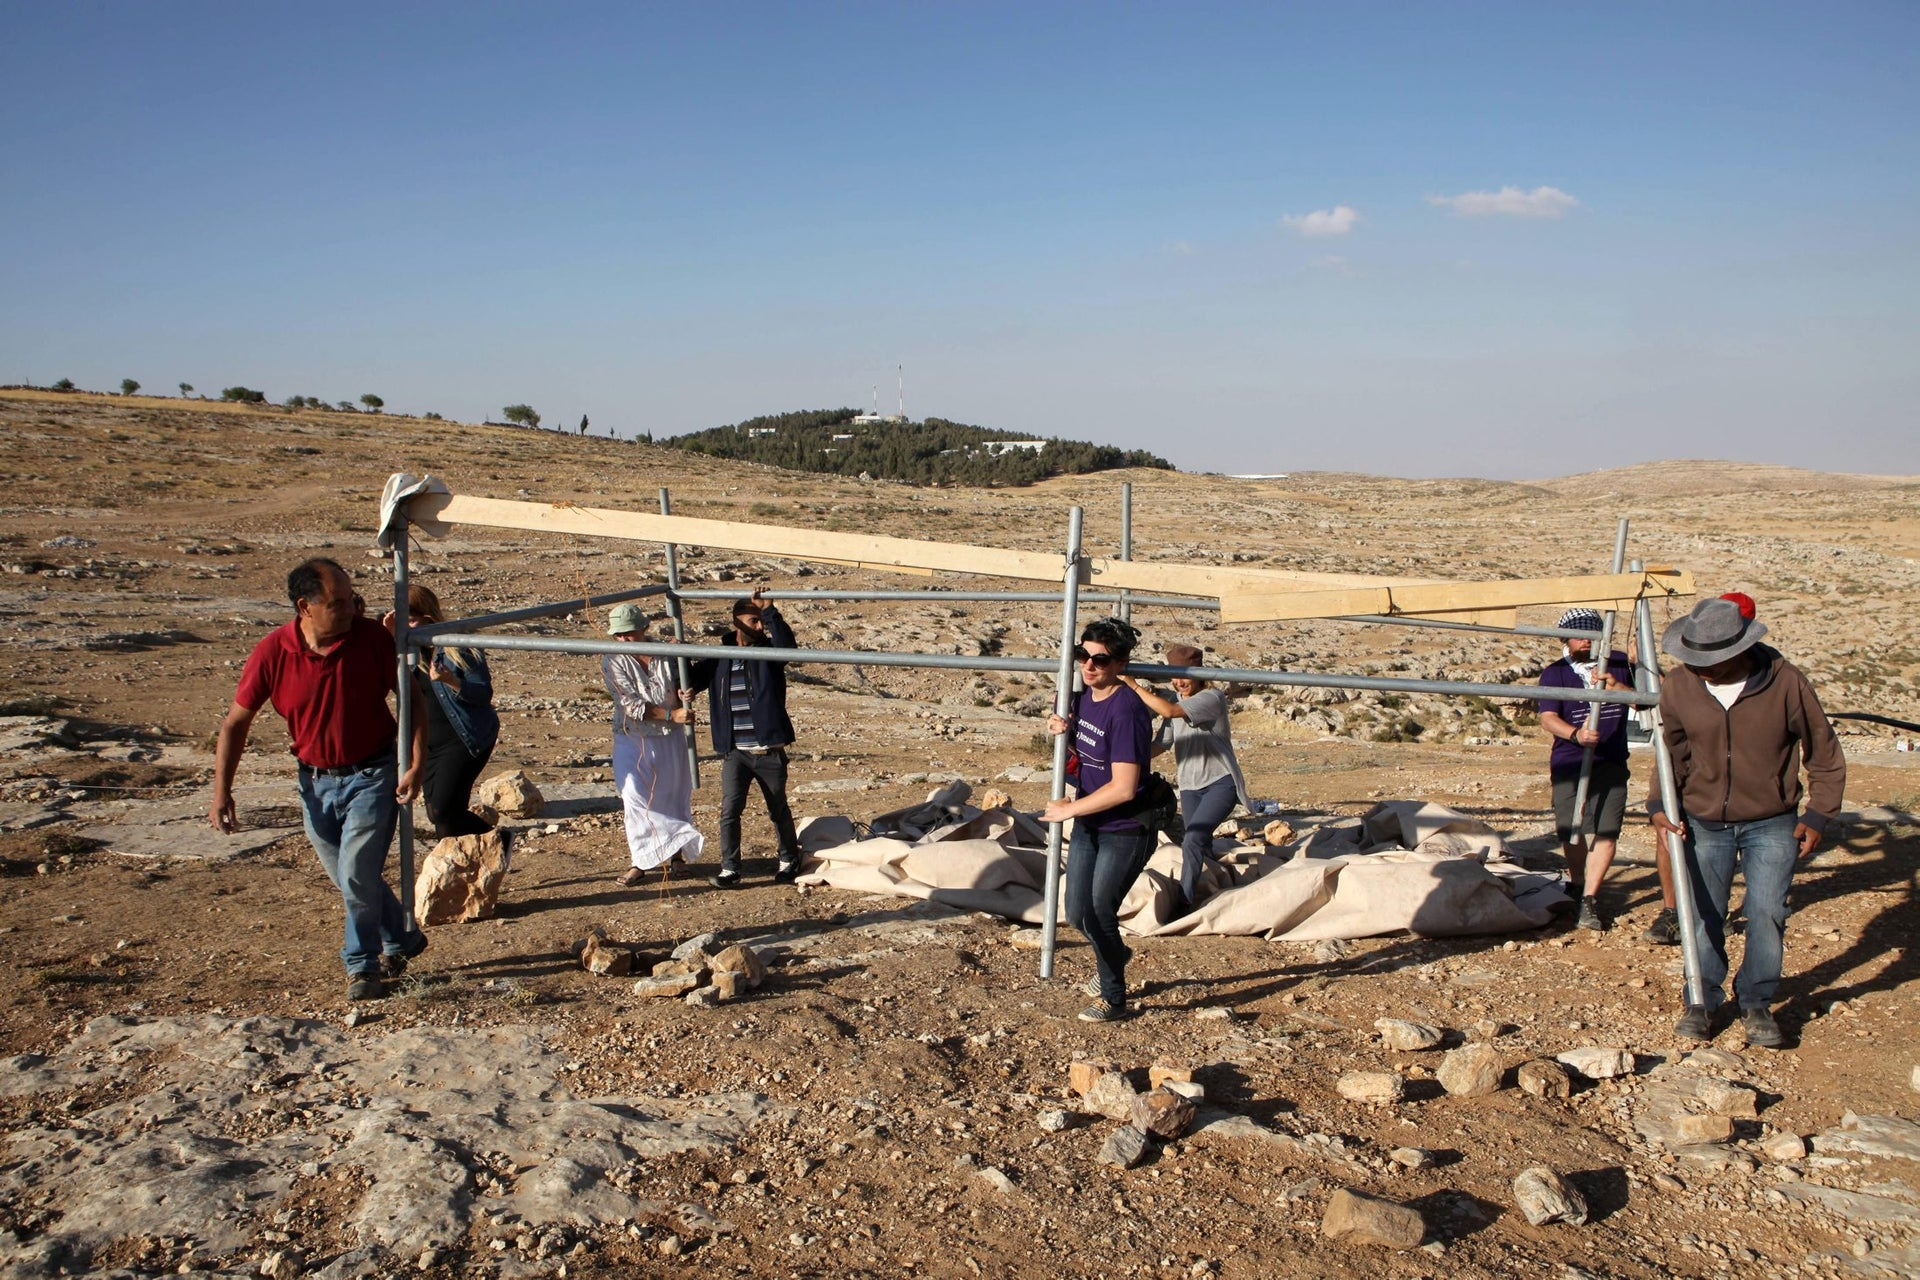 Activists reerecting a tent at the Sumud Freedom Camp in the West Bank, May 25, 2017.